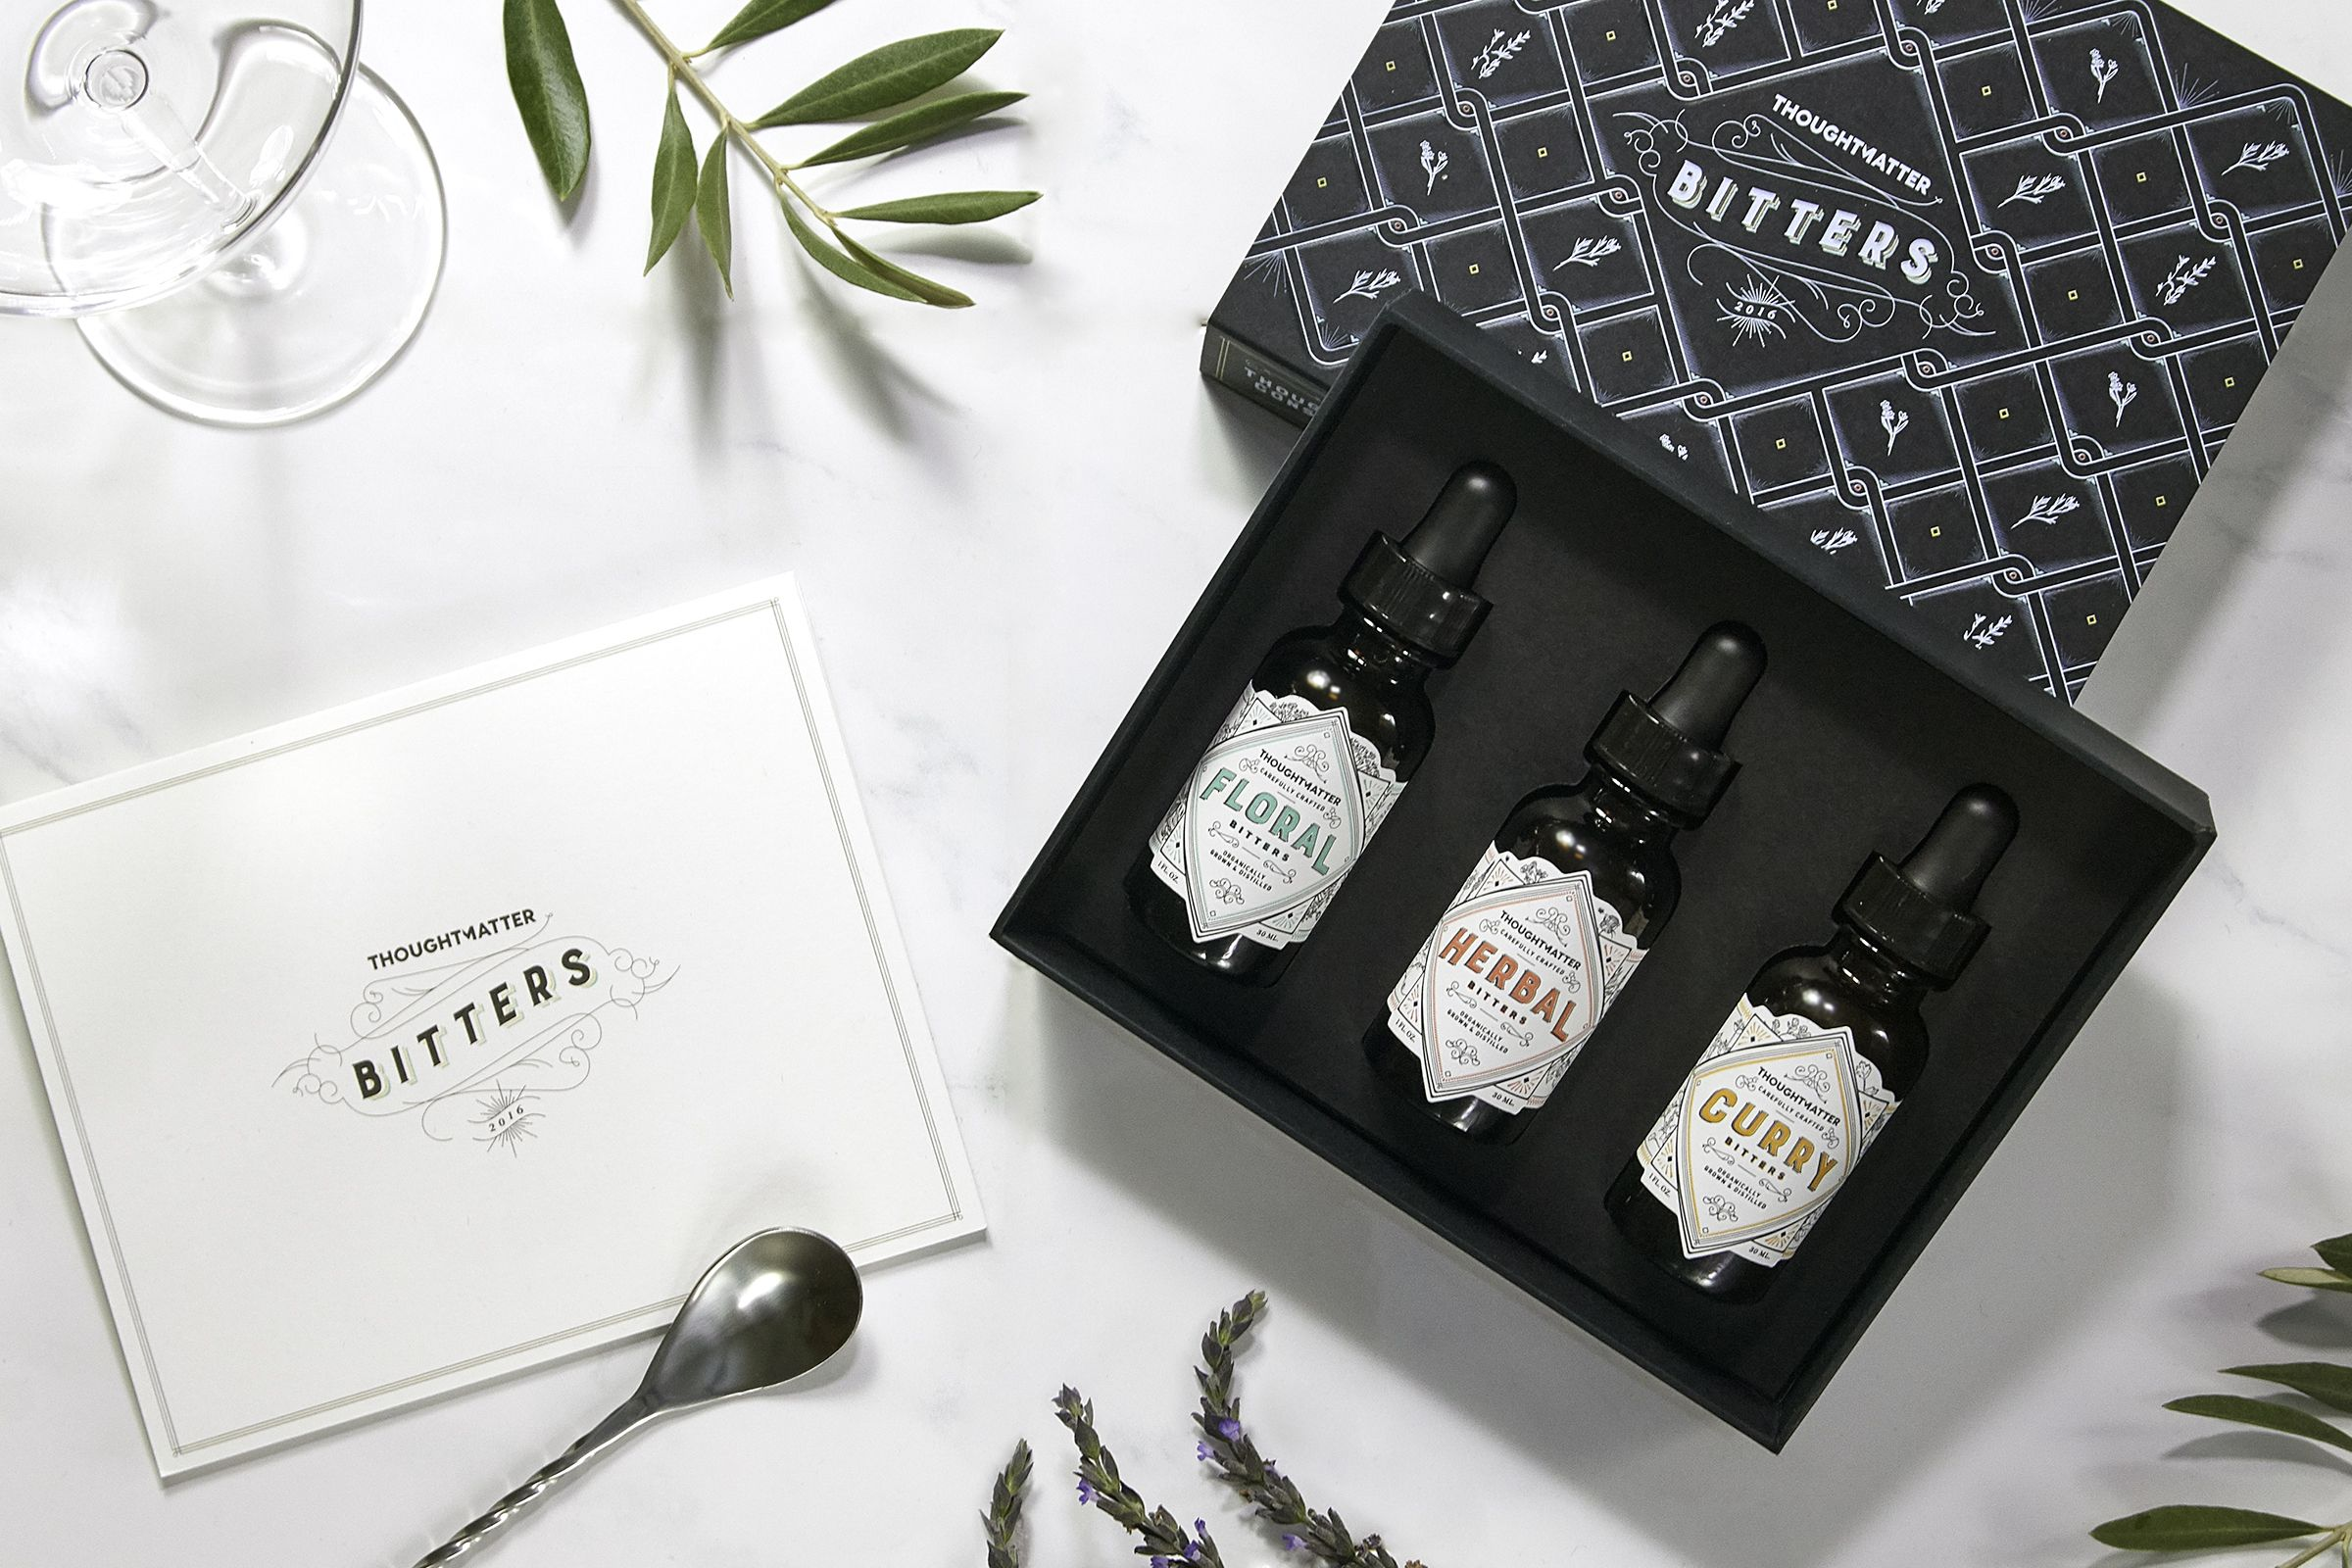 Thoughtfully Considered Bitters are a Gorgeous Gift That Keeps on Giving